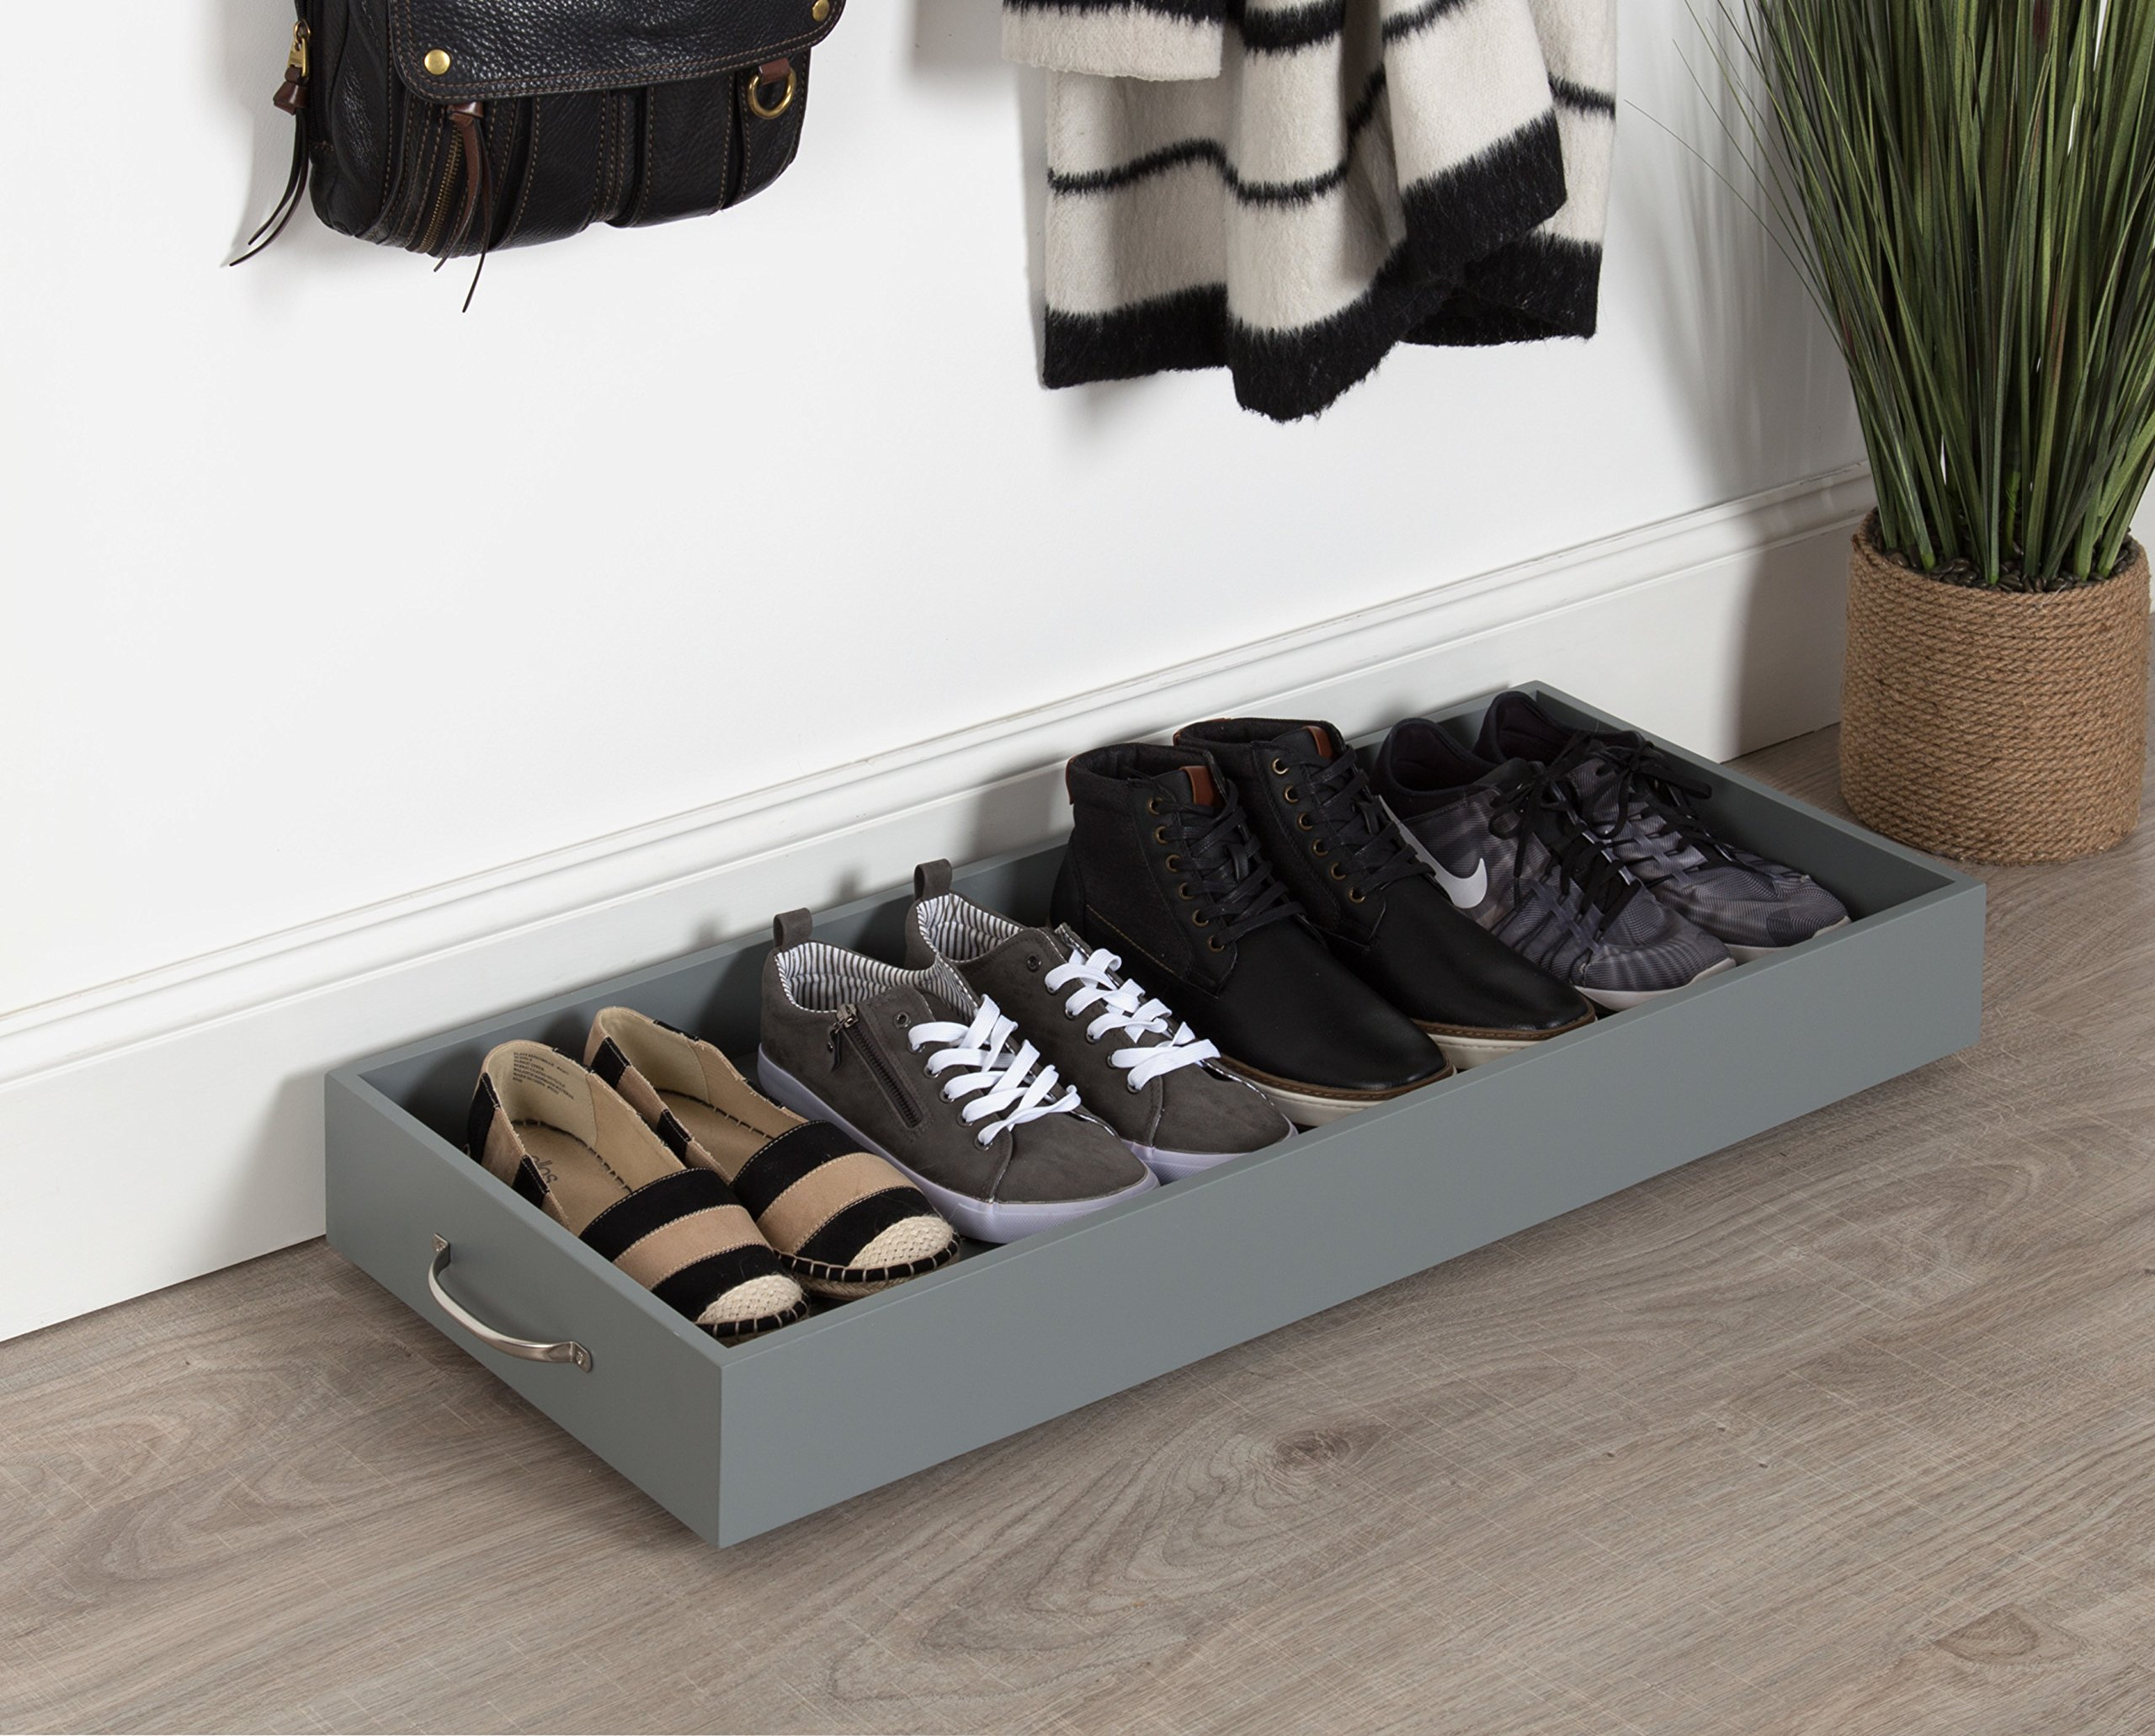 Kate and Laurel Callaway Multipurpose Rolling Wooden Boot/Shoe Storage Organizer Tray, Gray with Silver Handles 34 x 14 Inches by Kate and Laurel (Image #5)